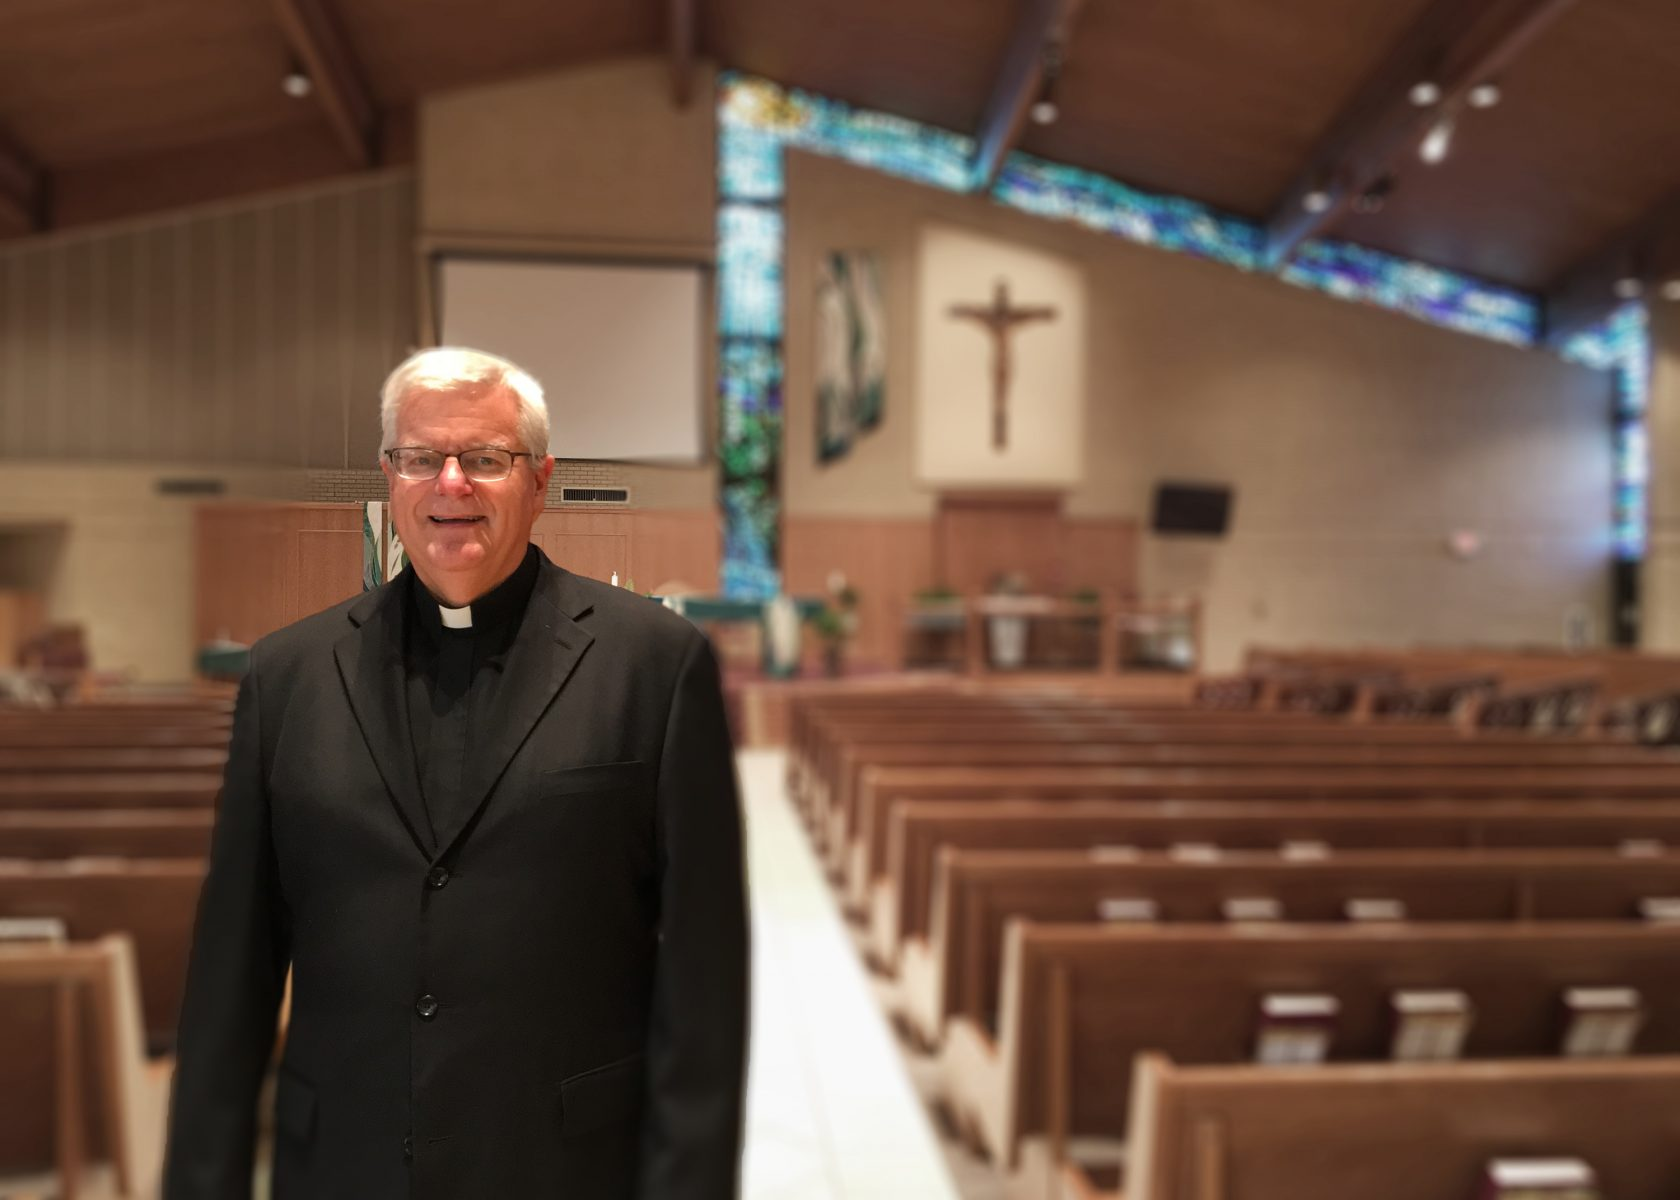 Fr. Ron Thoughts on Our Commercial